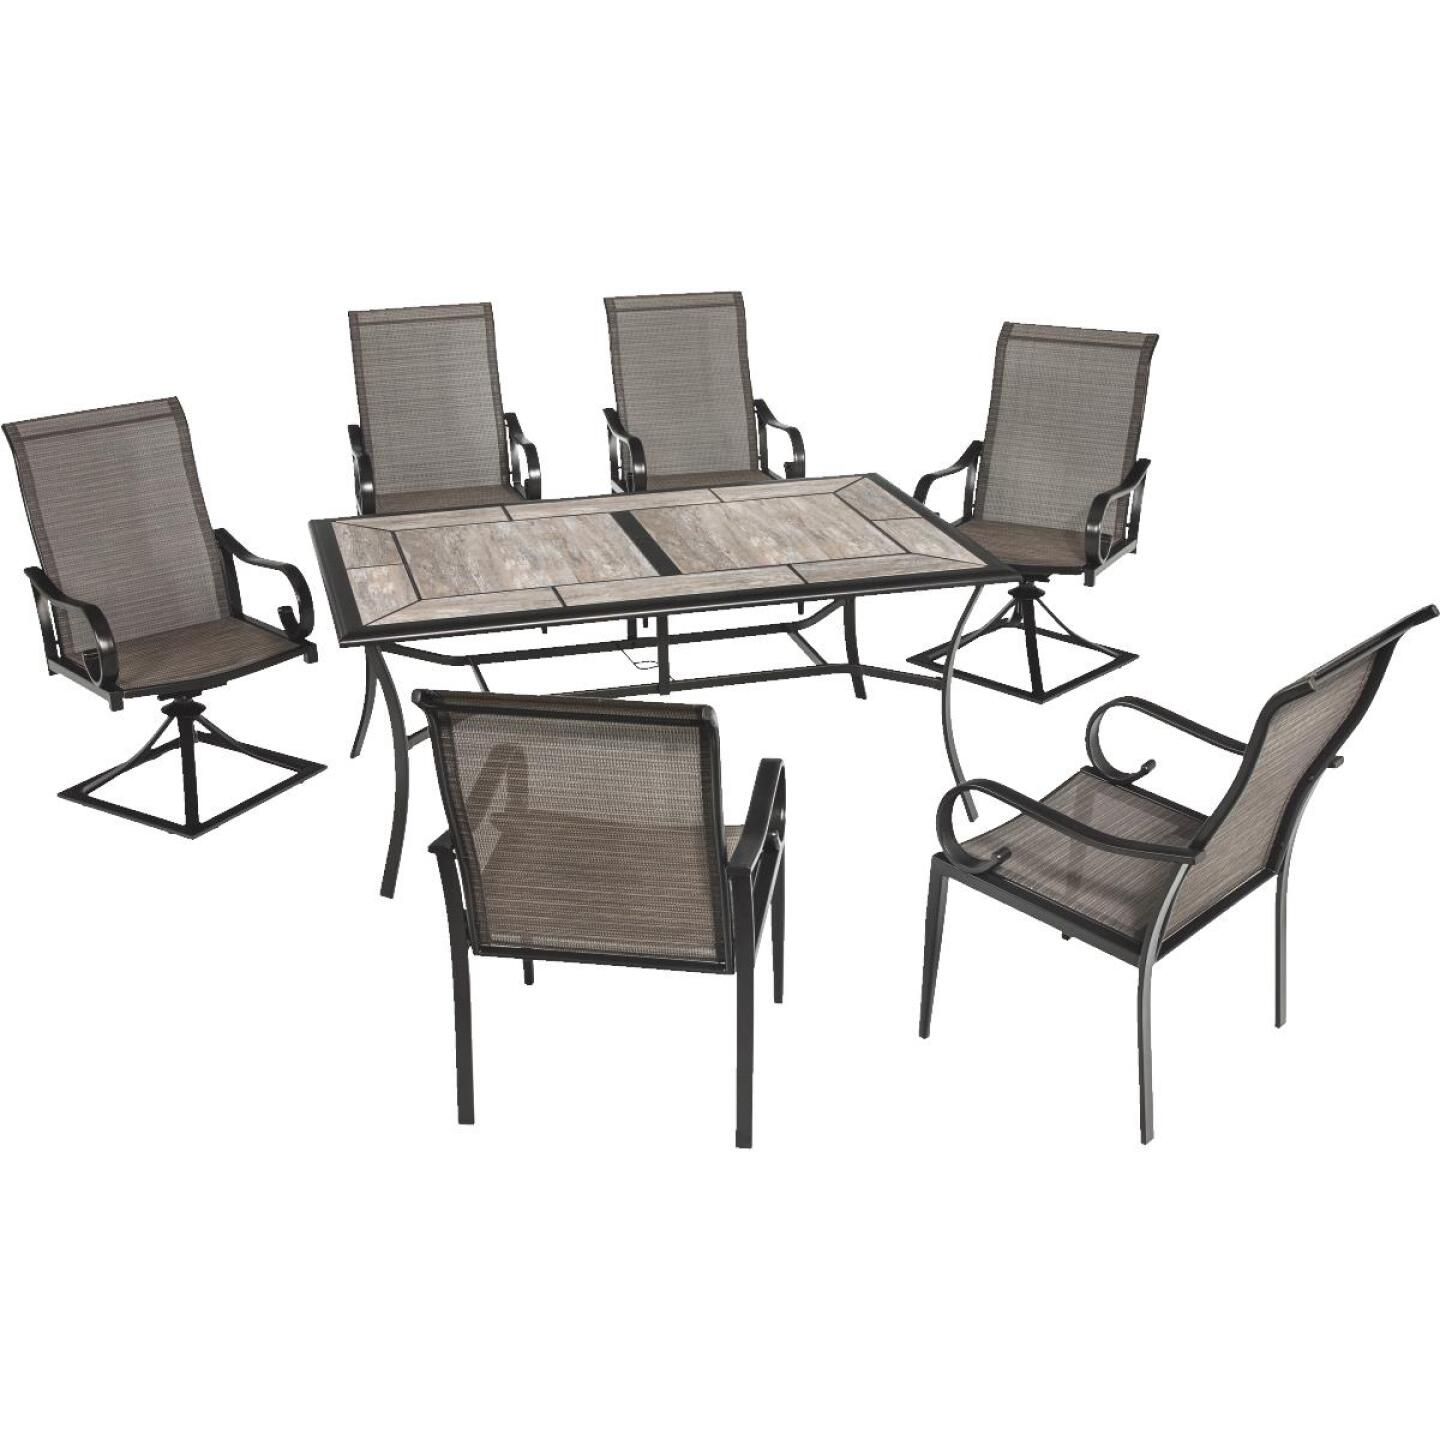 Outdoor Expressions Berkshire 7-Piece Dining Set Image 237